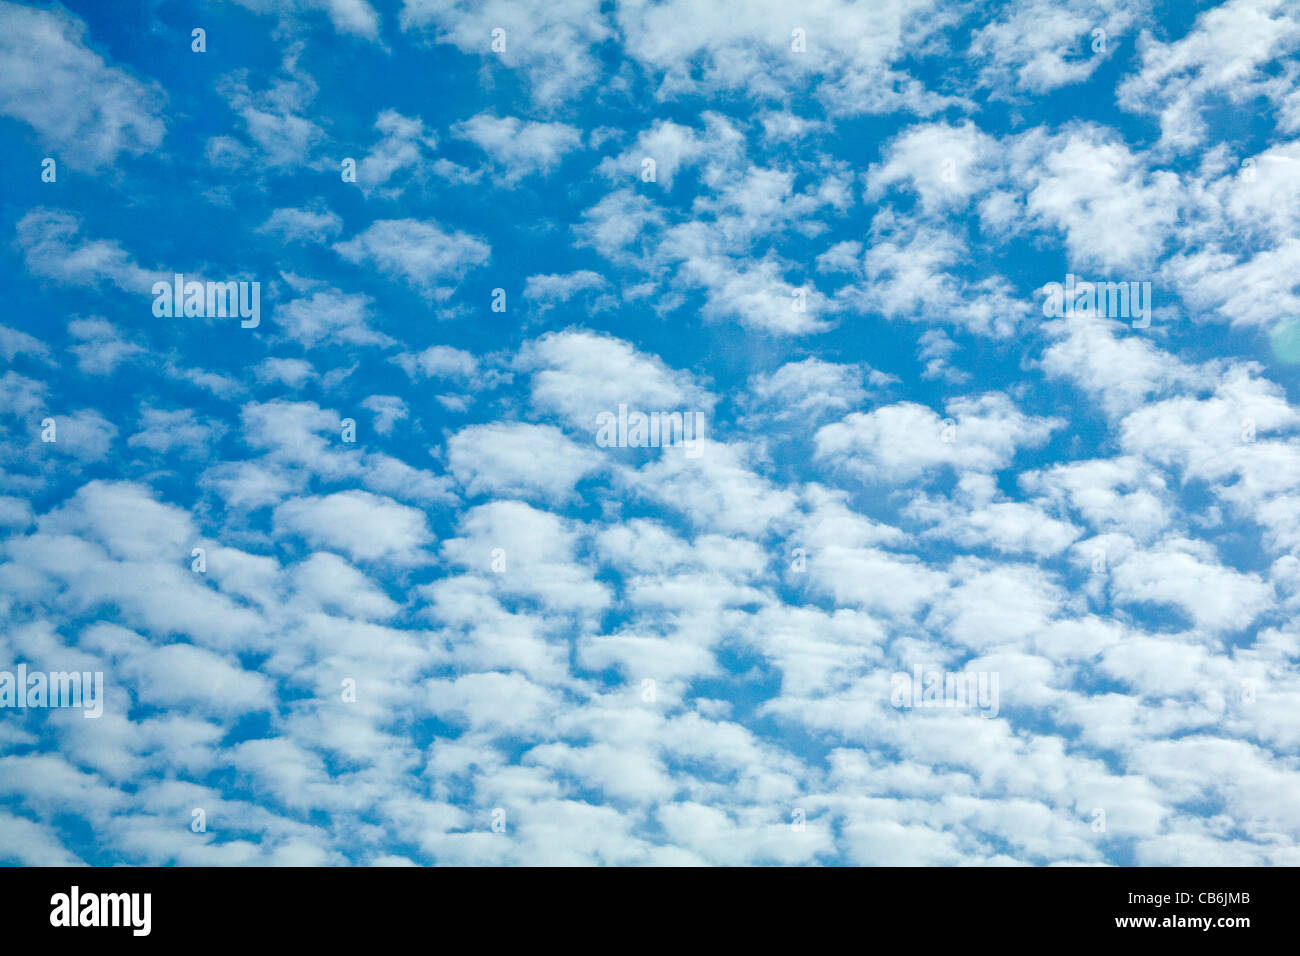 Fluffy clouds on blue sky - background - Stock Image